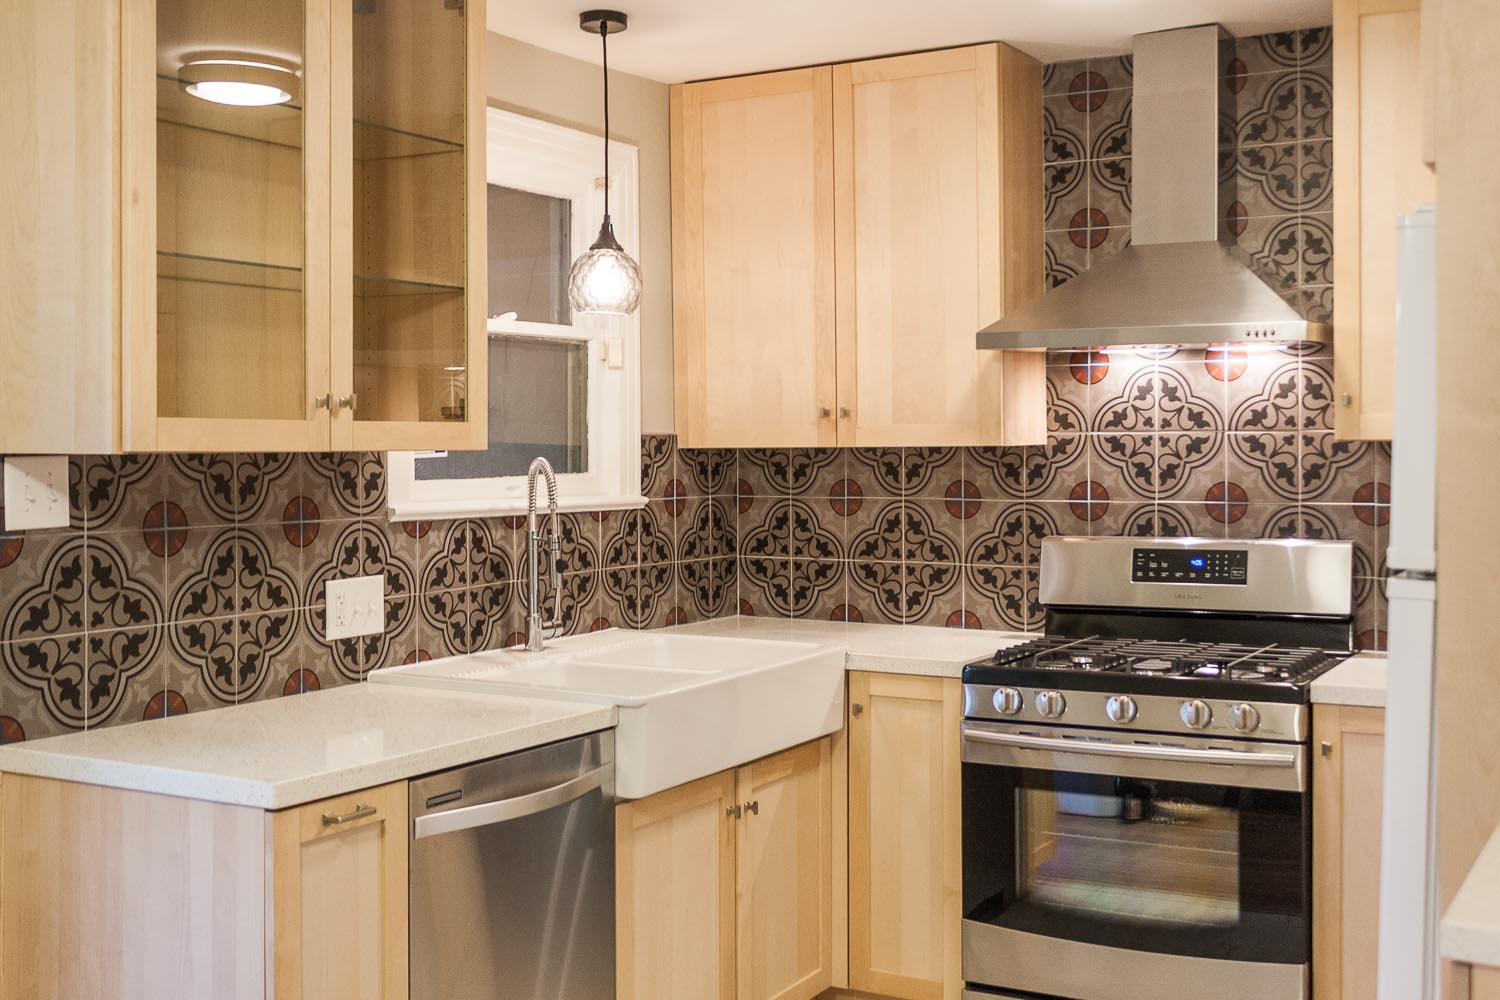 55th_kitchen-0111.jpg